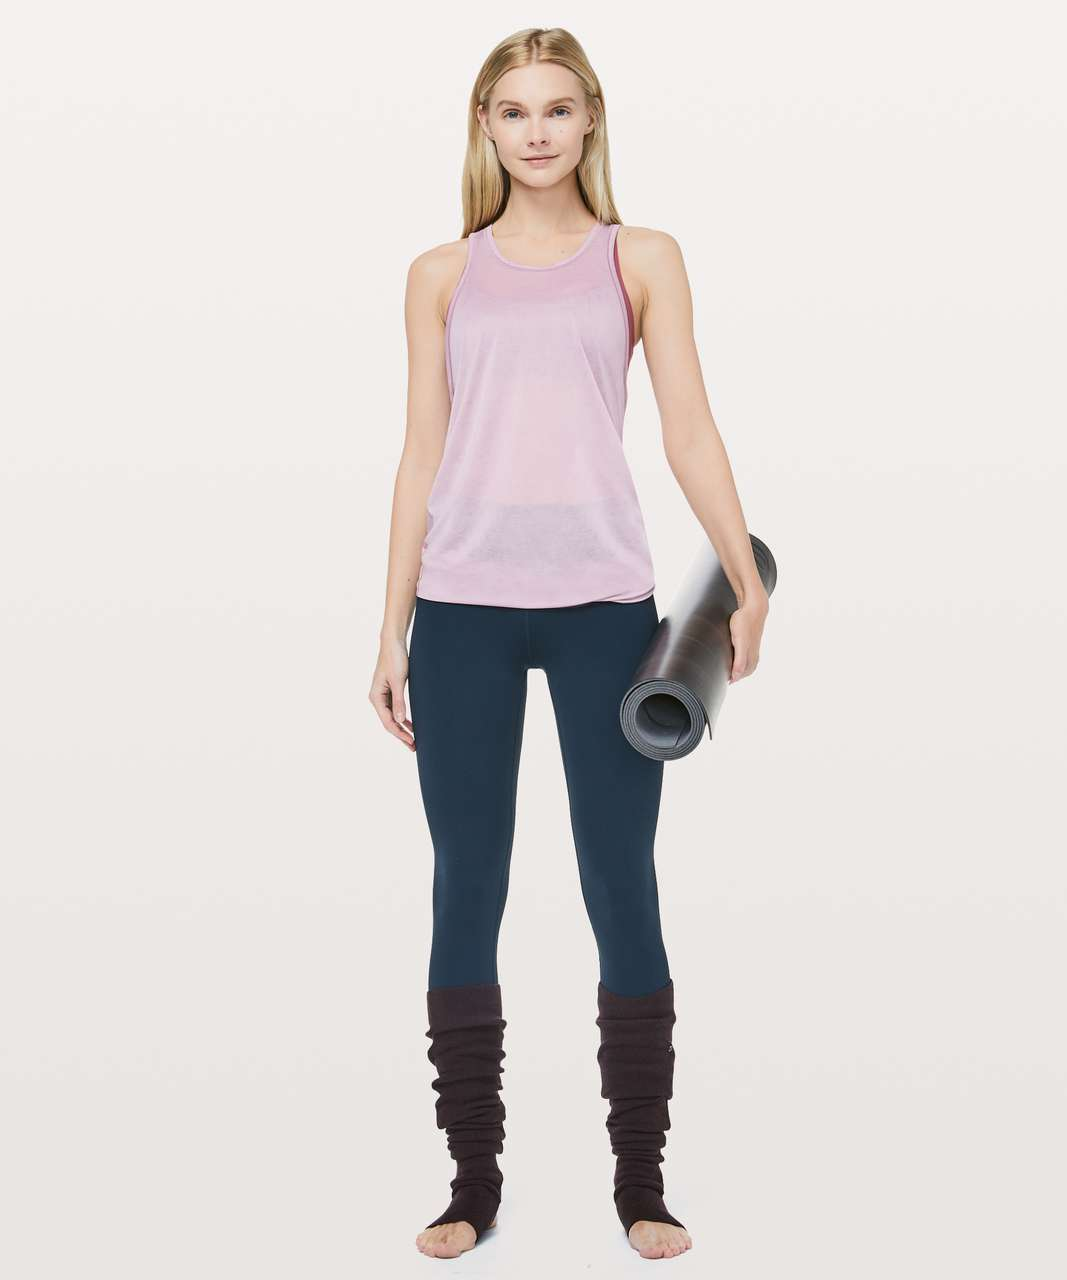 Lululemon Goal Up Tank - Antoinette